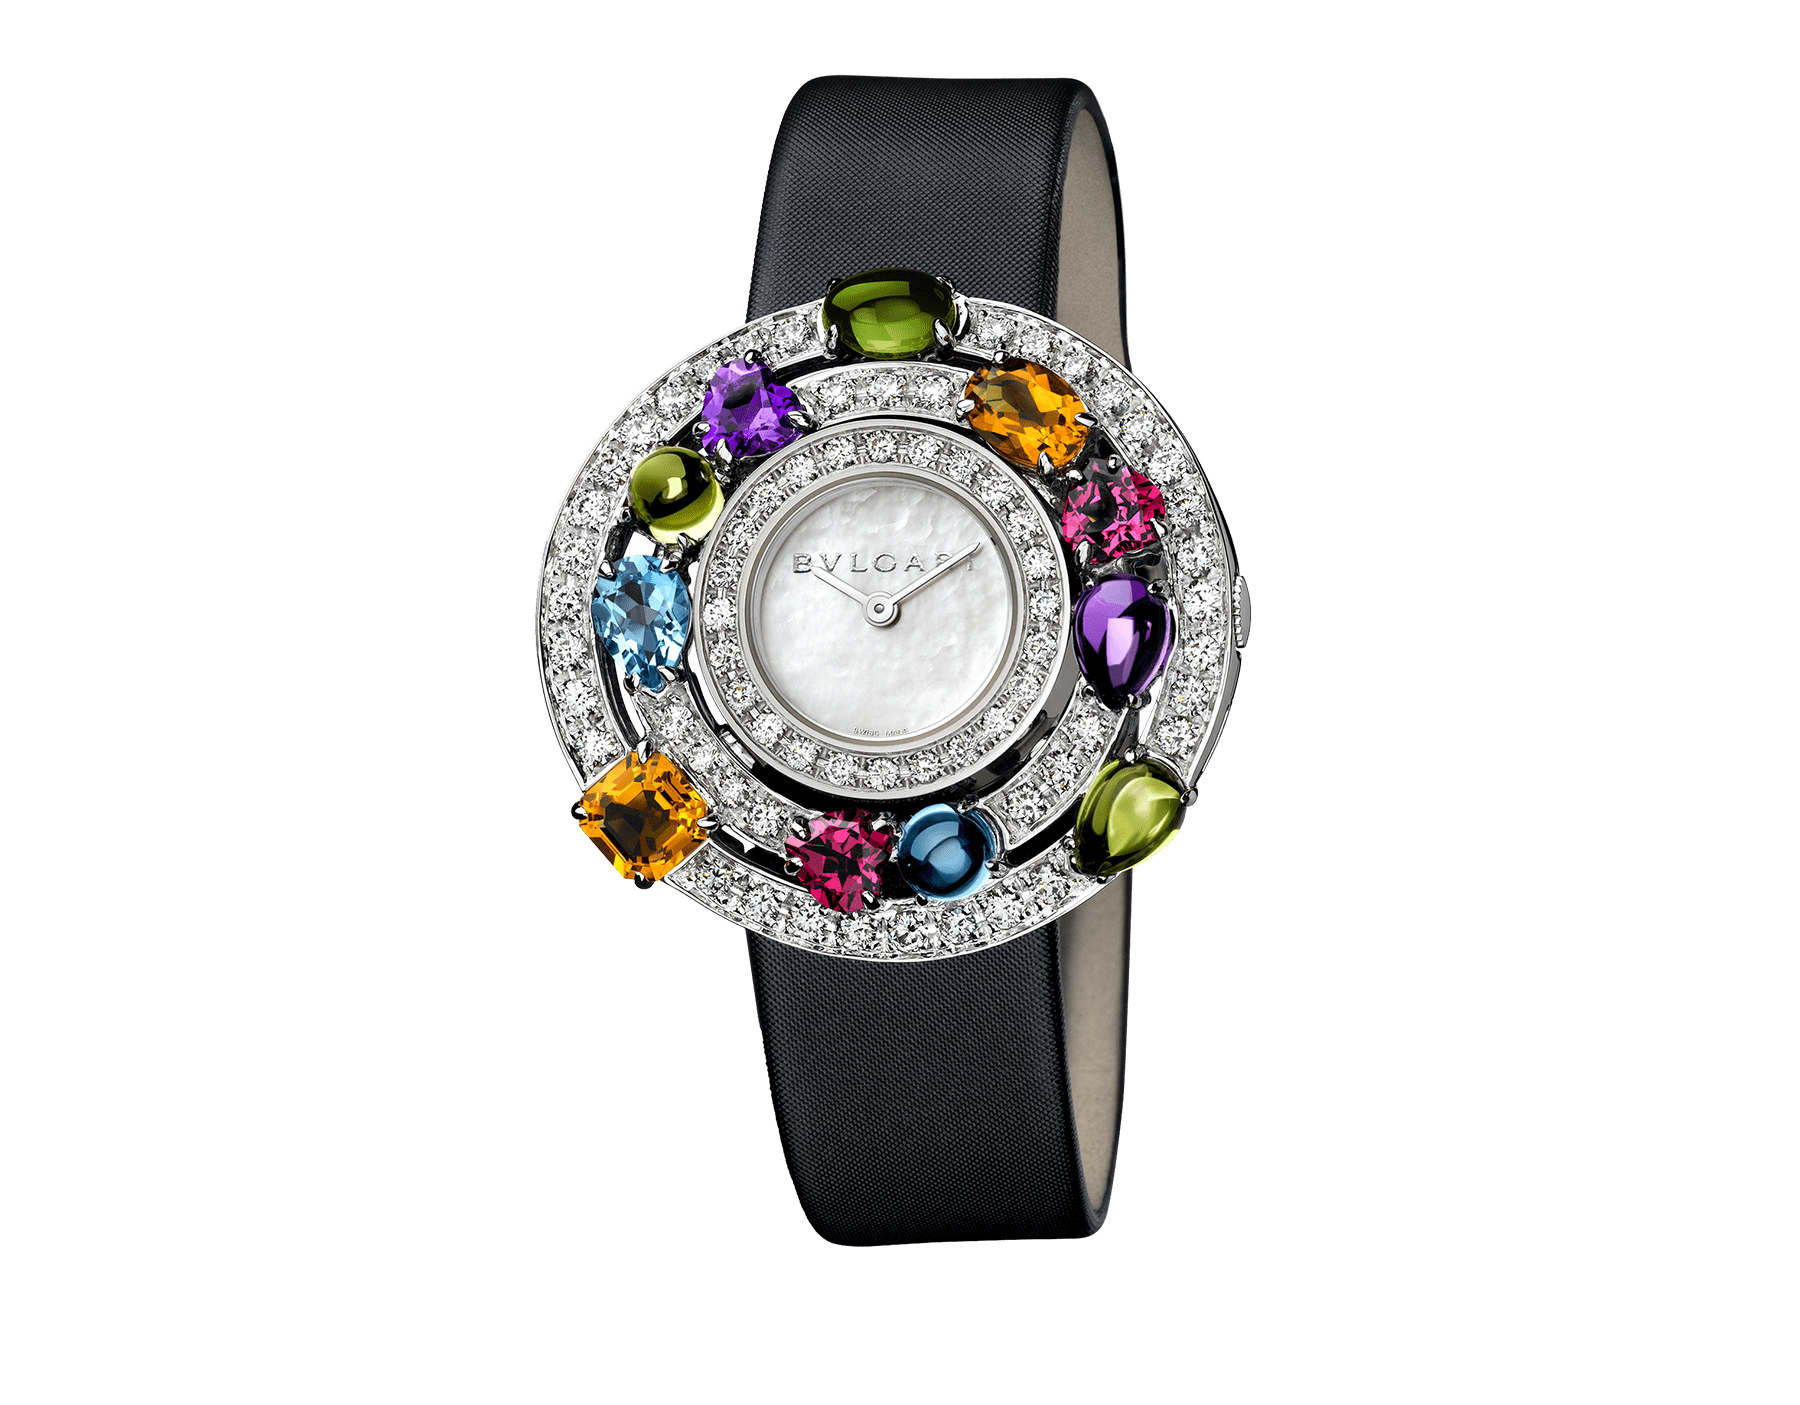 Astrale watch with 18 kt white gold case set with brilliant-cut diamonds and fancy-cut coloured gemstones, white mother-of-pearl dial and black satin bracelet 102010 image 1